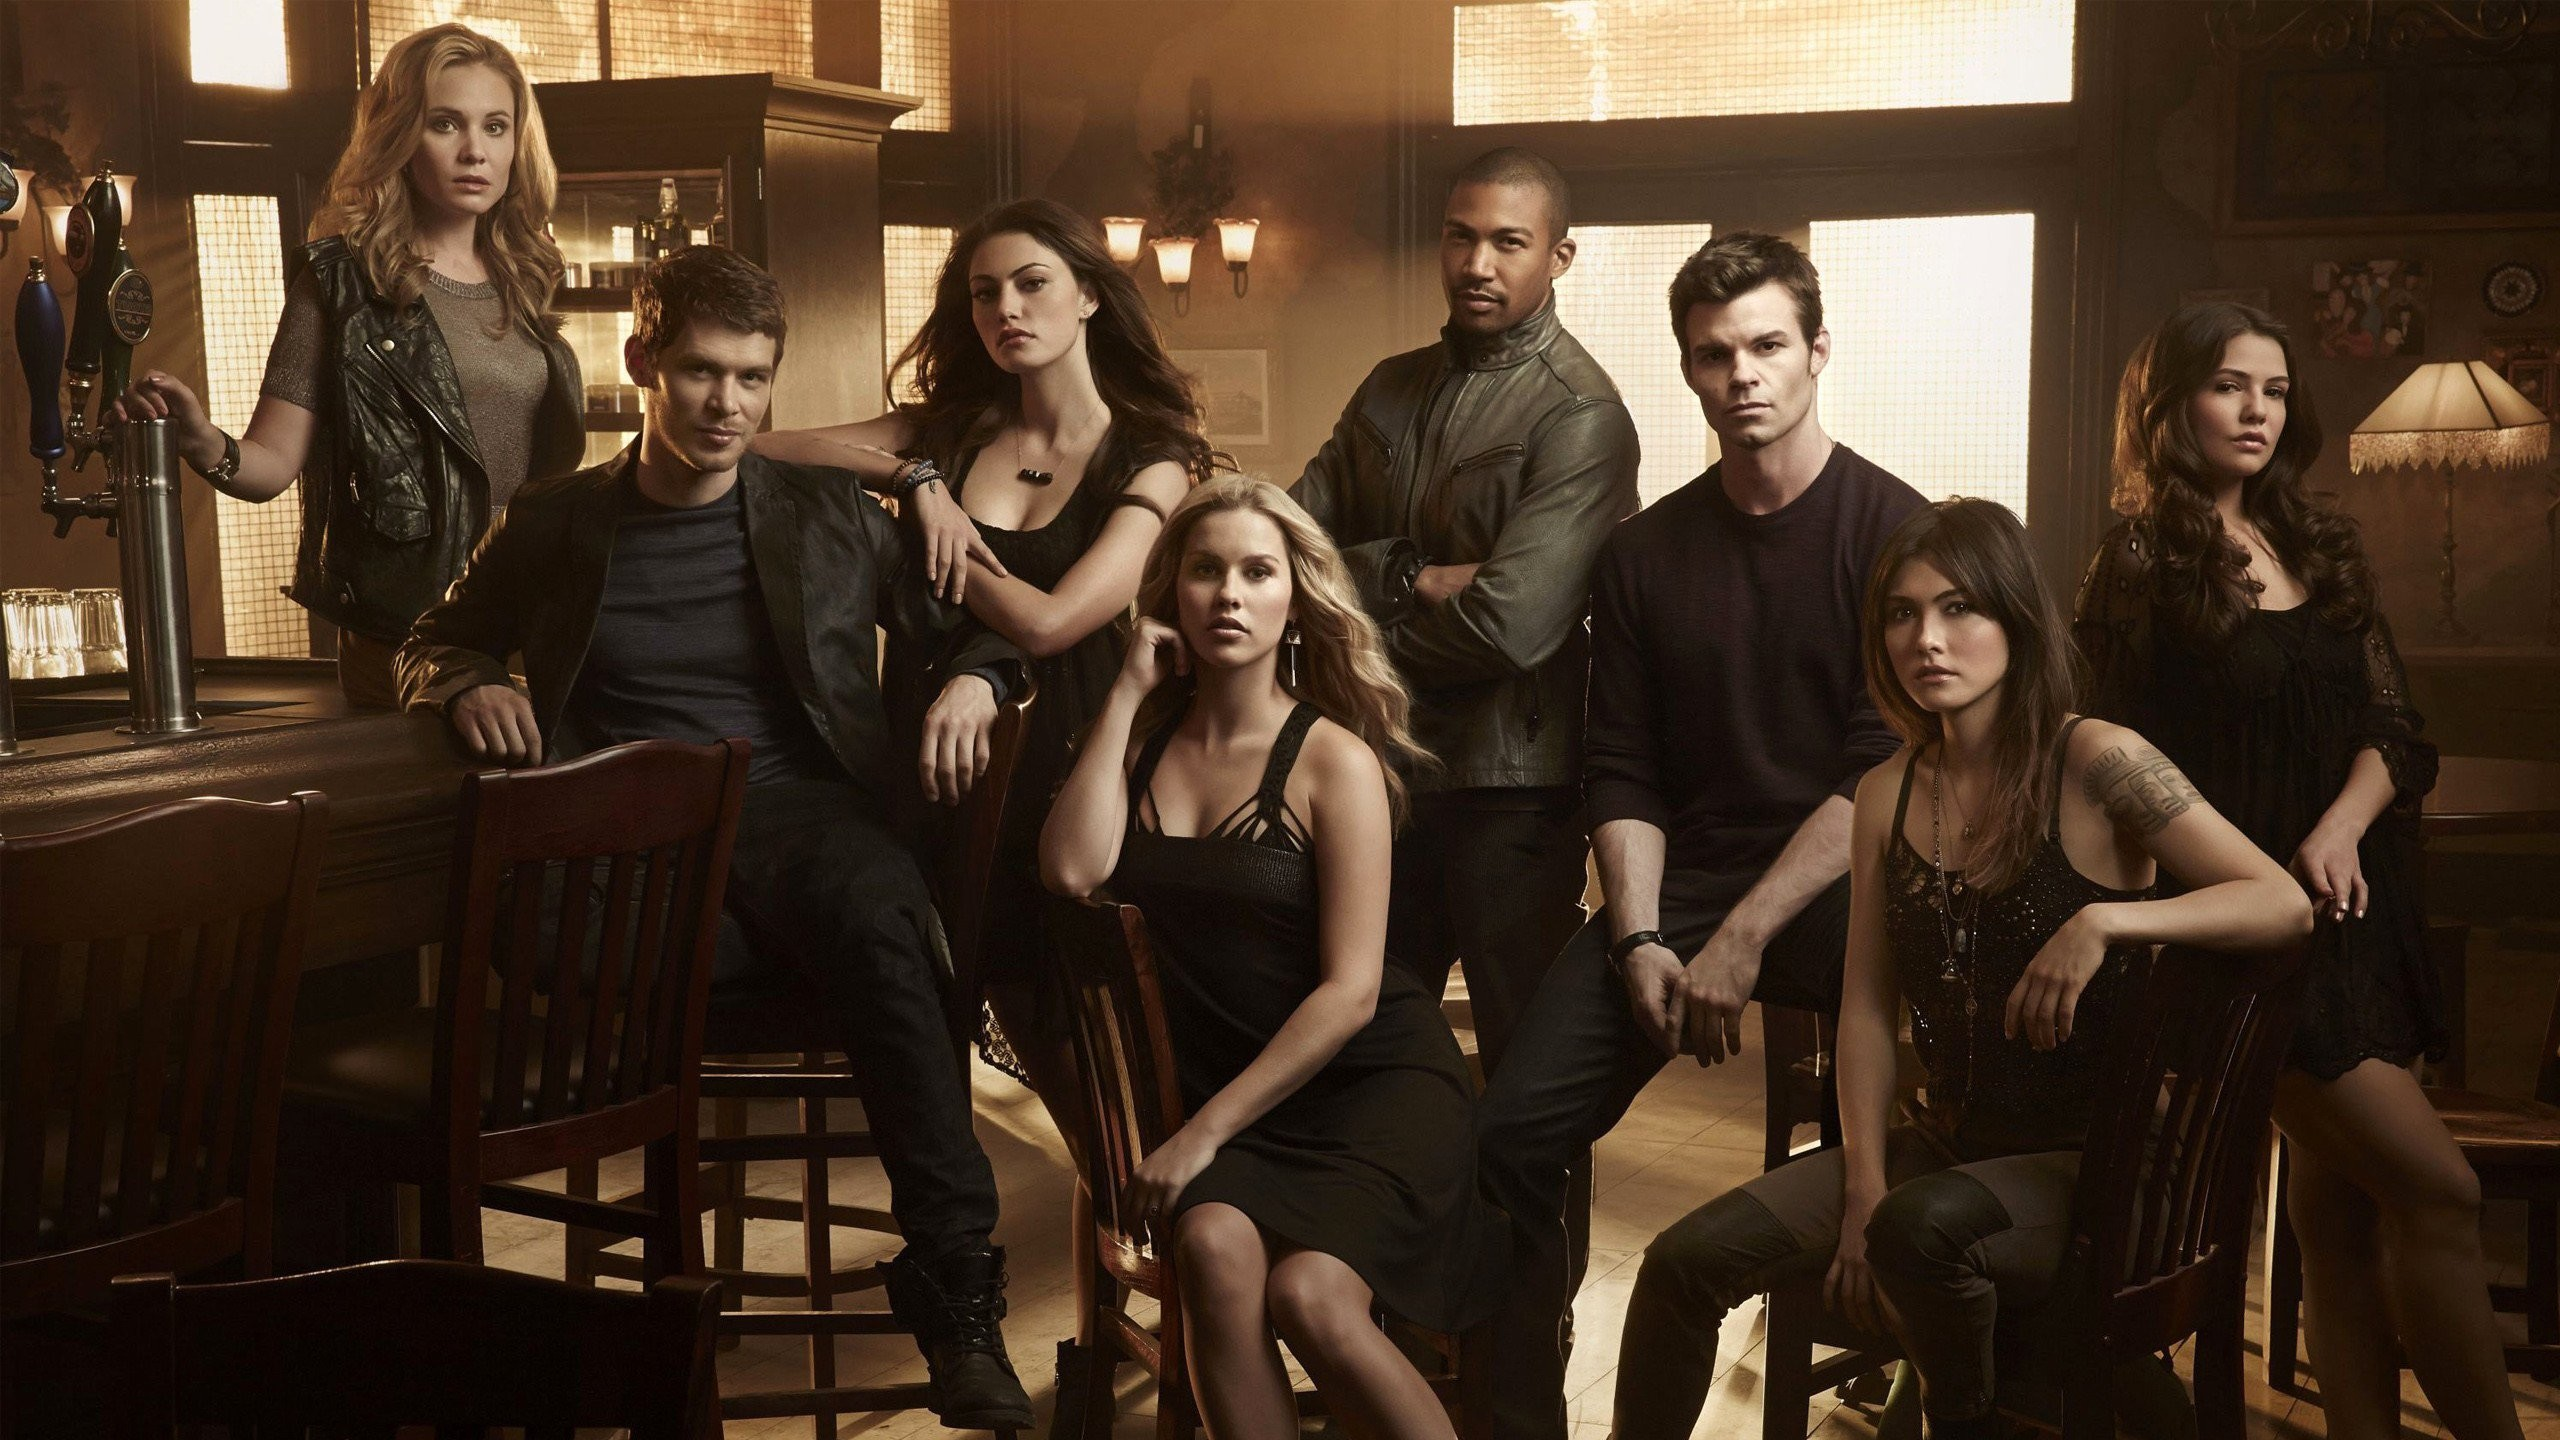 The Originals Wallpapers (76+ images)